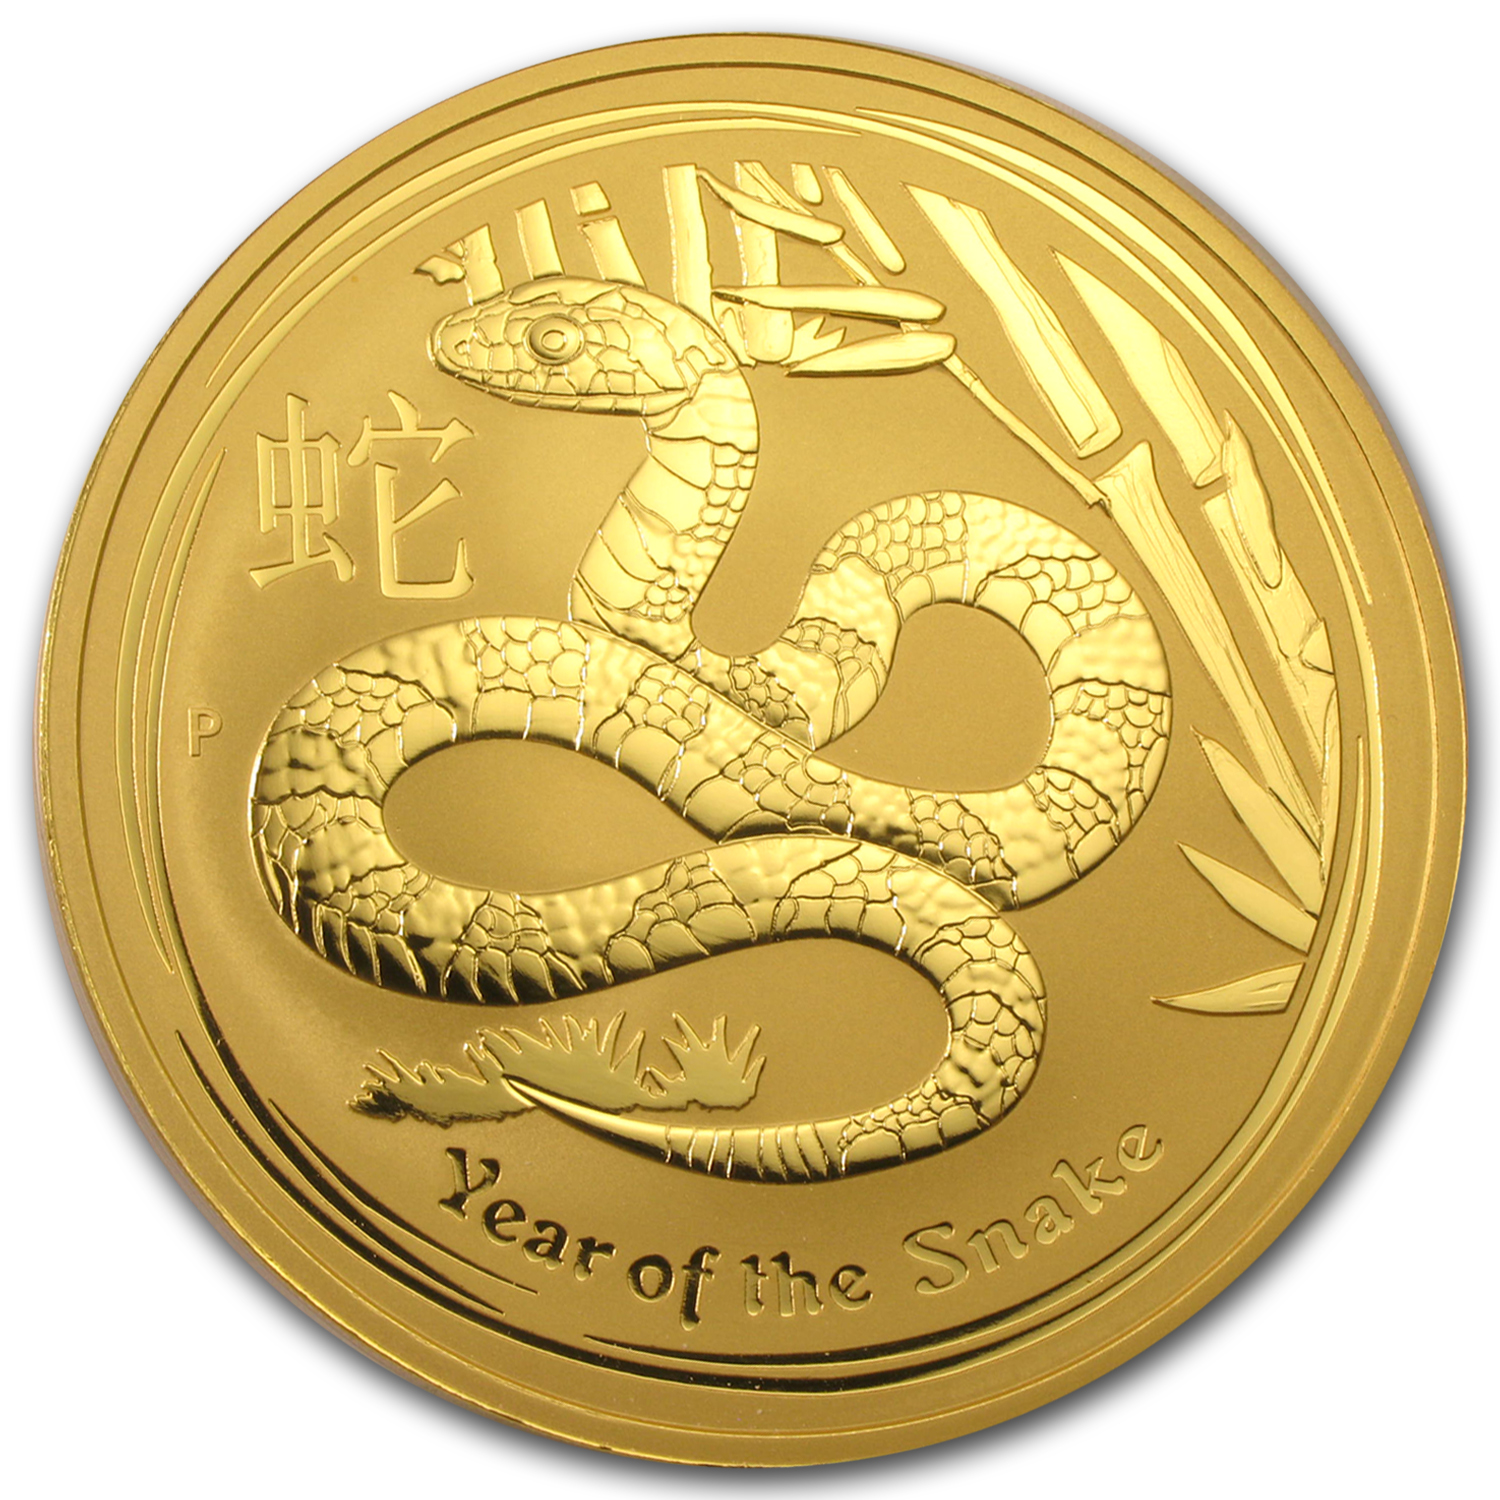 2013 1 Kilo 32.15 oz Gold Lunar Year of the Snake (SII)